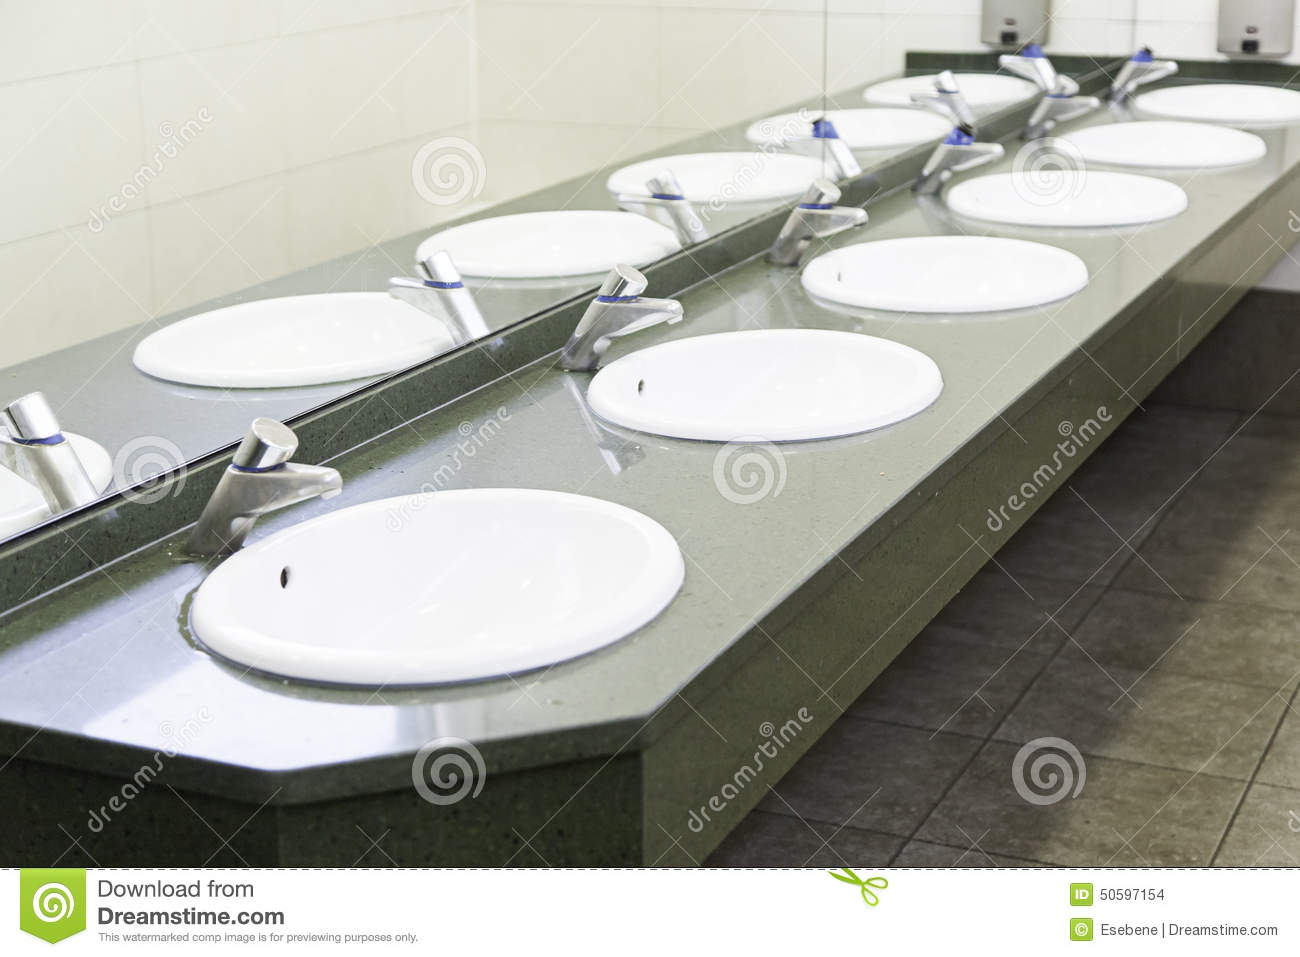 Sinks in a public bathroom stock photo. Image of pure - 50597154